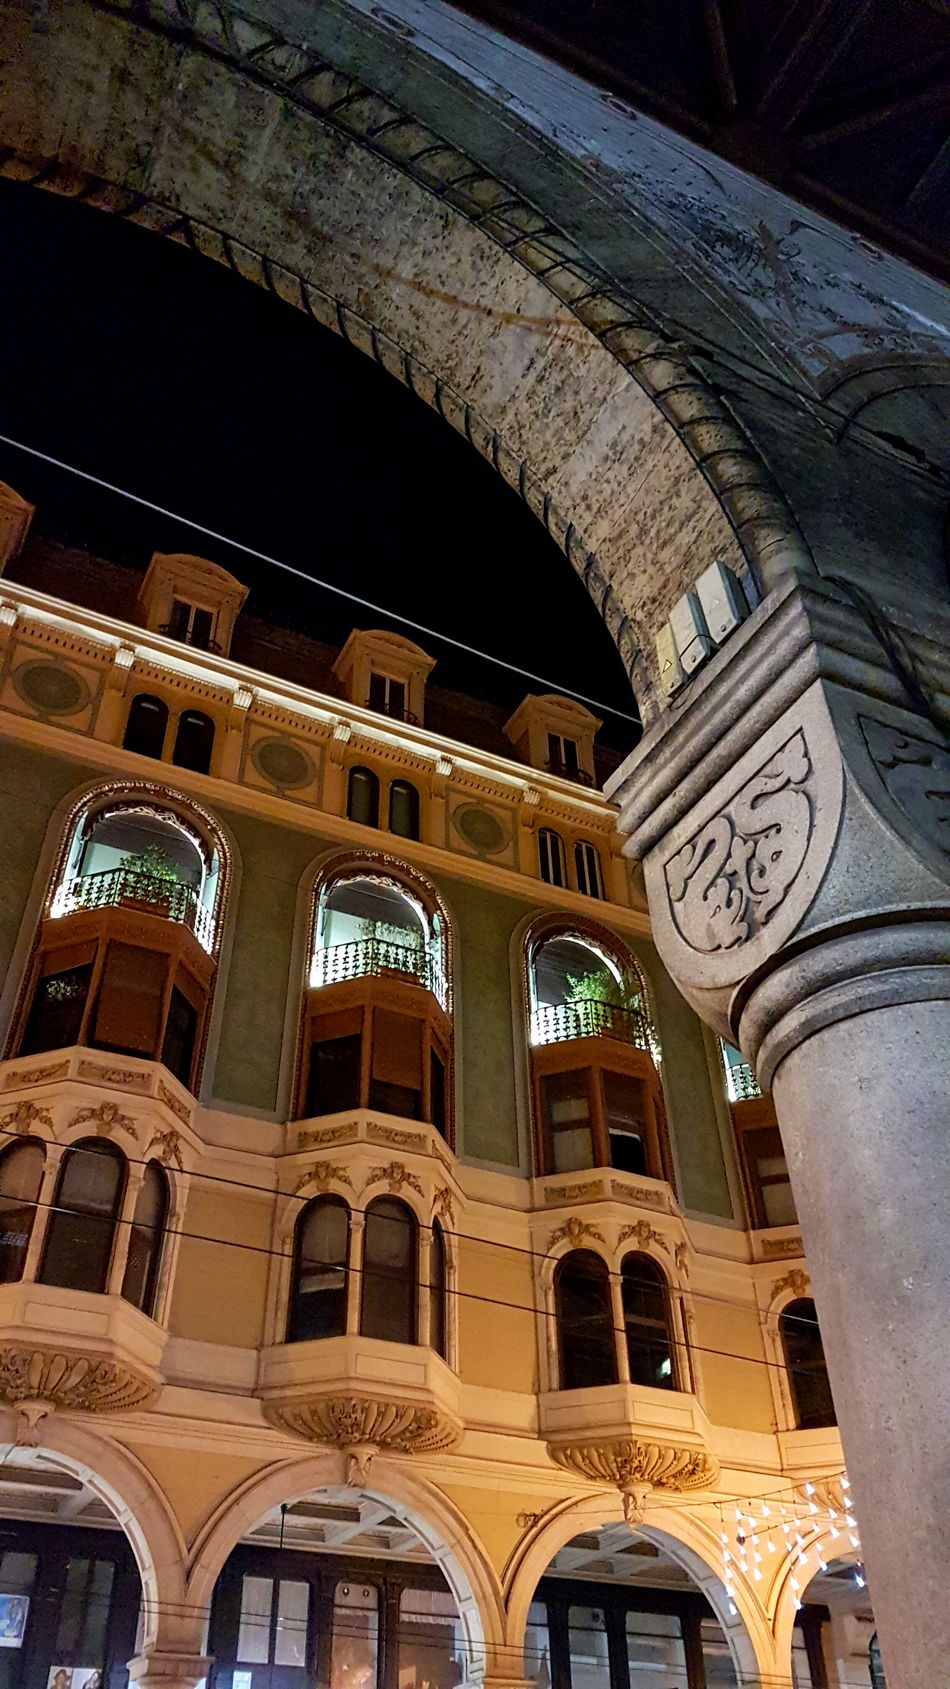 Streetlights Streets No People Stone Stonestructures Architecture Ancient City Cities At Night Genova Night Arch Built Structure Illuminated Columns Colonne Architectural Column Porticato Portici Windows